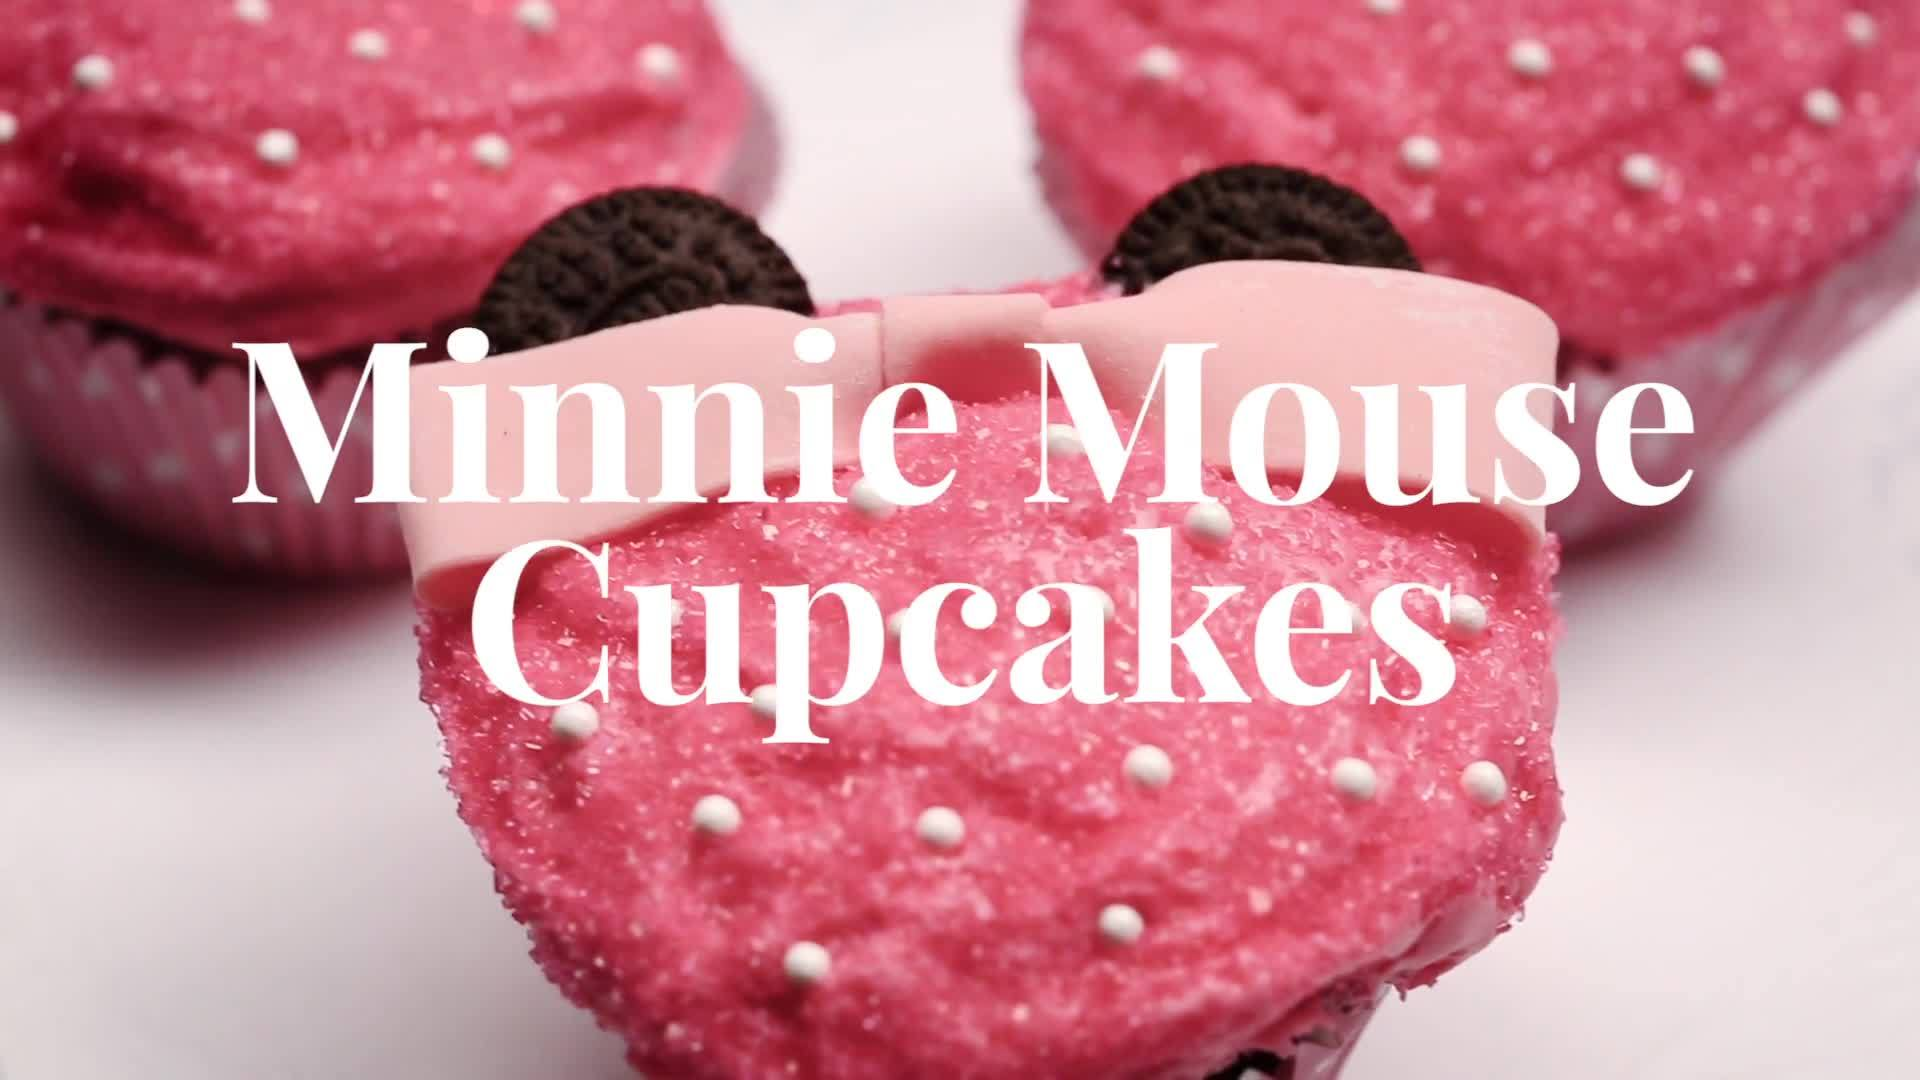 Minnie Mouse Cupcakes Dishes by Disney Disney Video